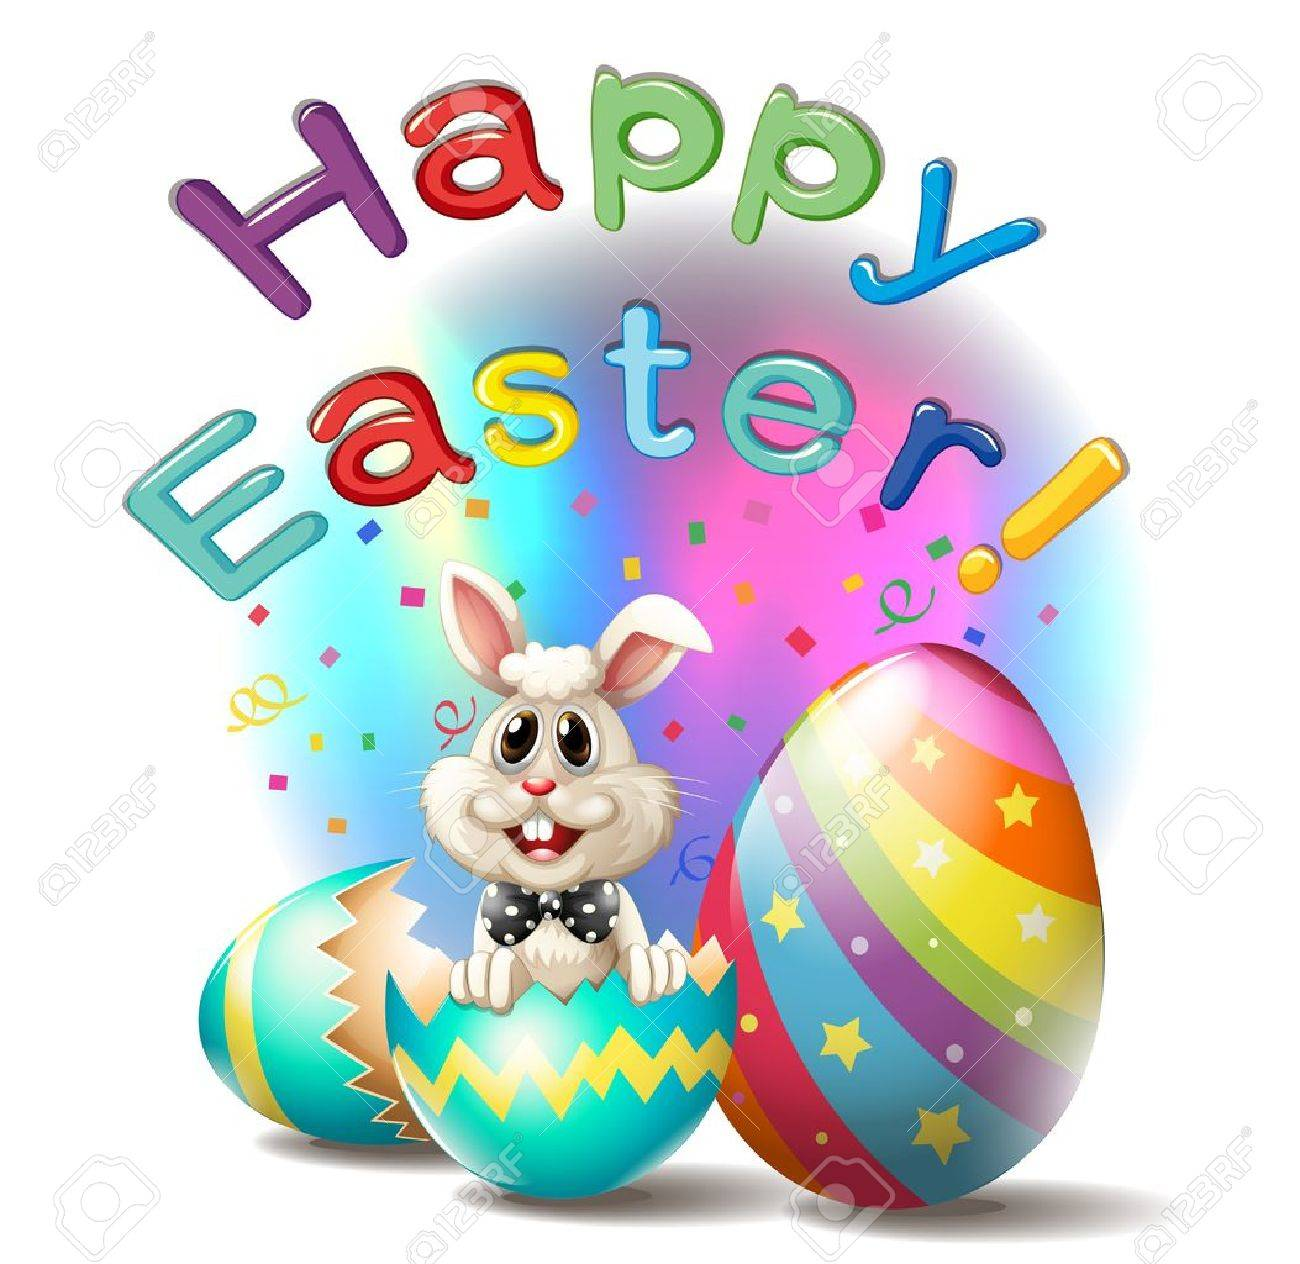 https://previews.123rf.com/images/iimages/iimages1302/iimages130200997/17897463-illustration-of-a-happy-easter-poster-on-a-white-background.jpg